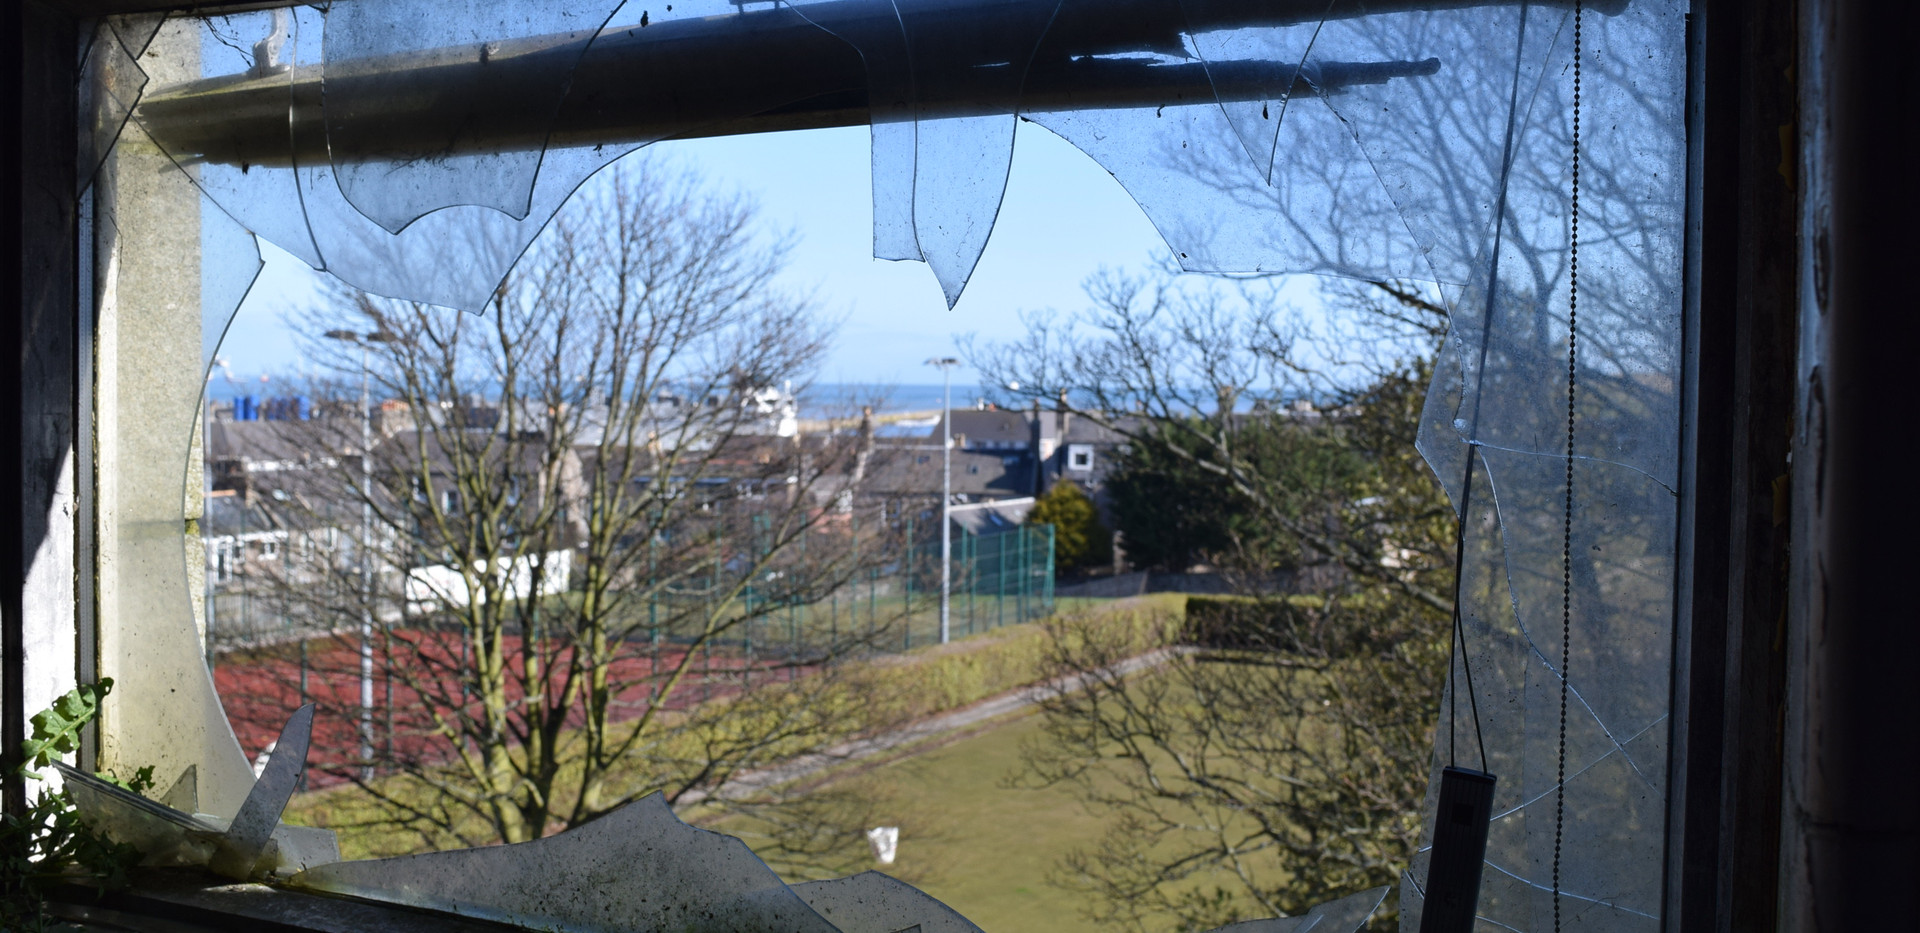 View from inside the Victoria Road School buildings